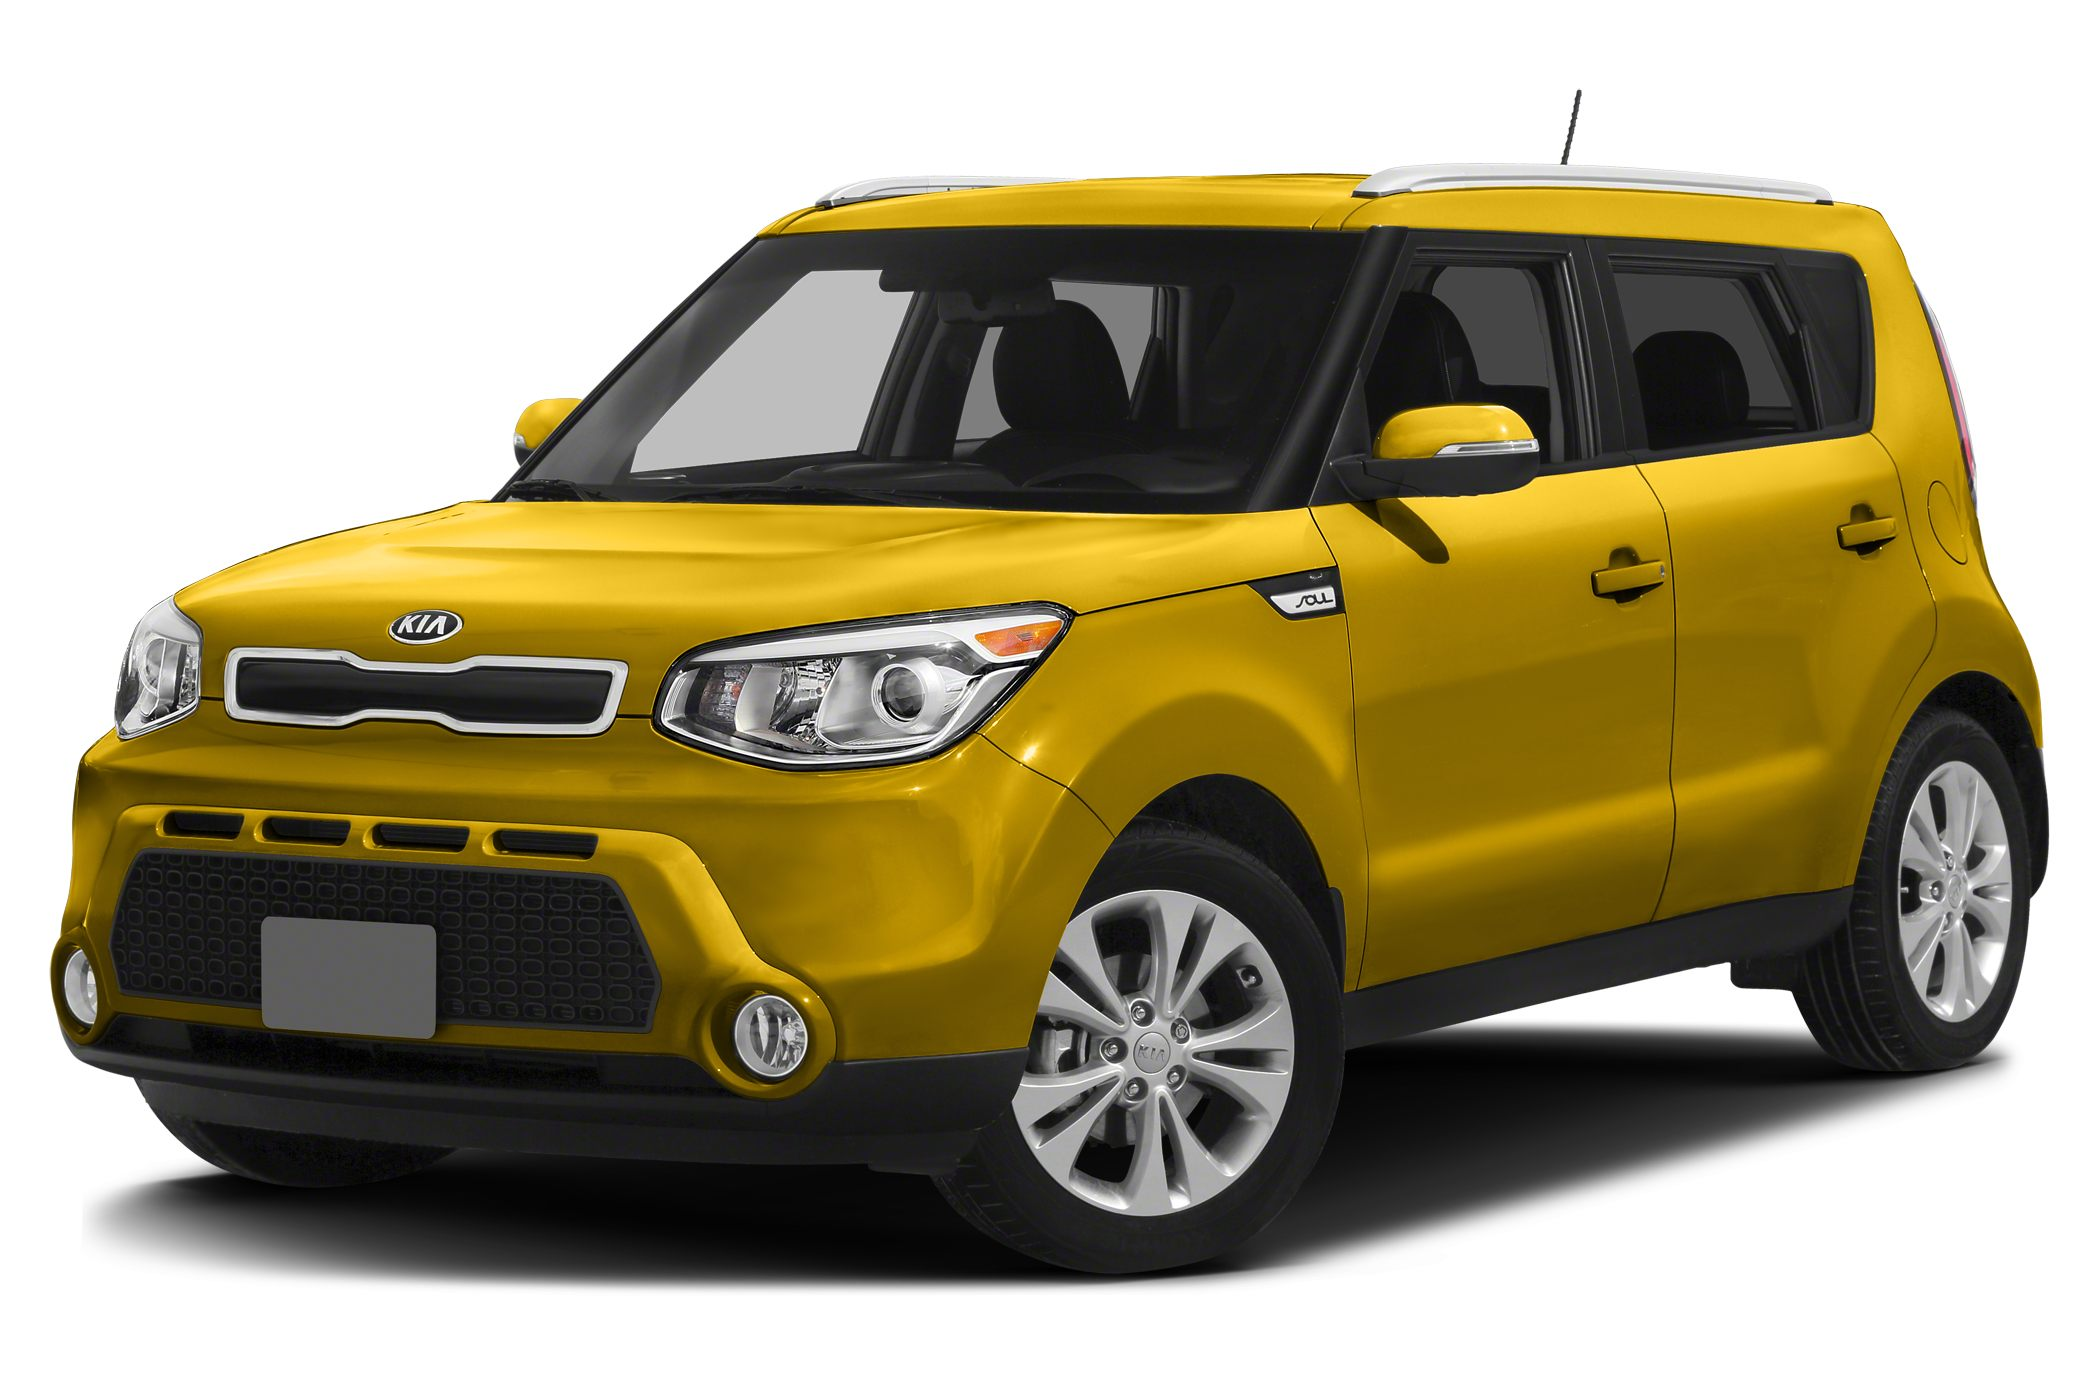 2016 Kia Soul  For Internet Pricing and InformationPlease call Teresa Brown  866-387-3798It will